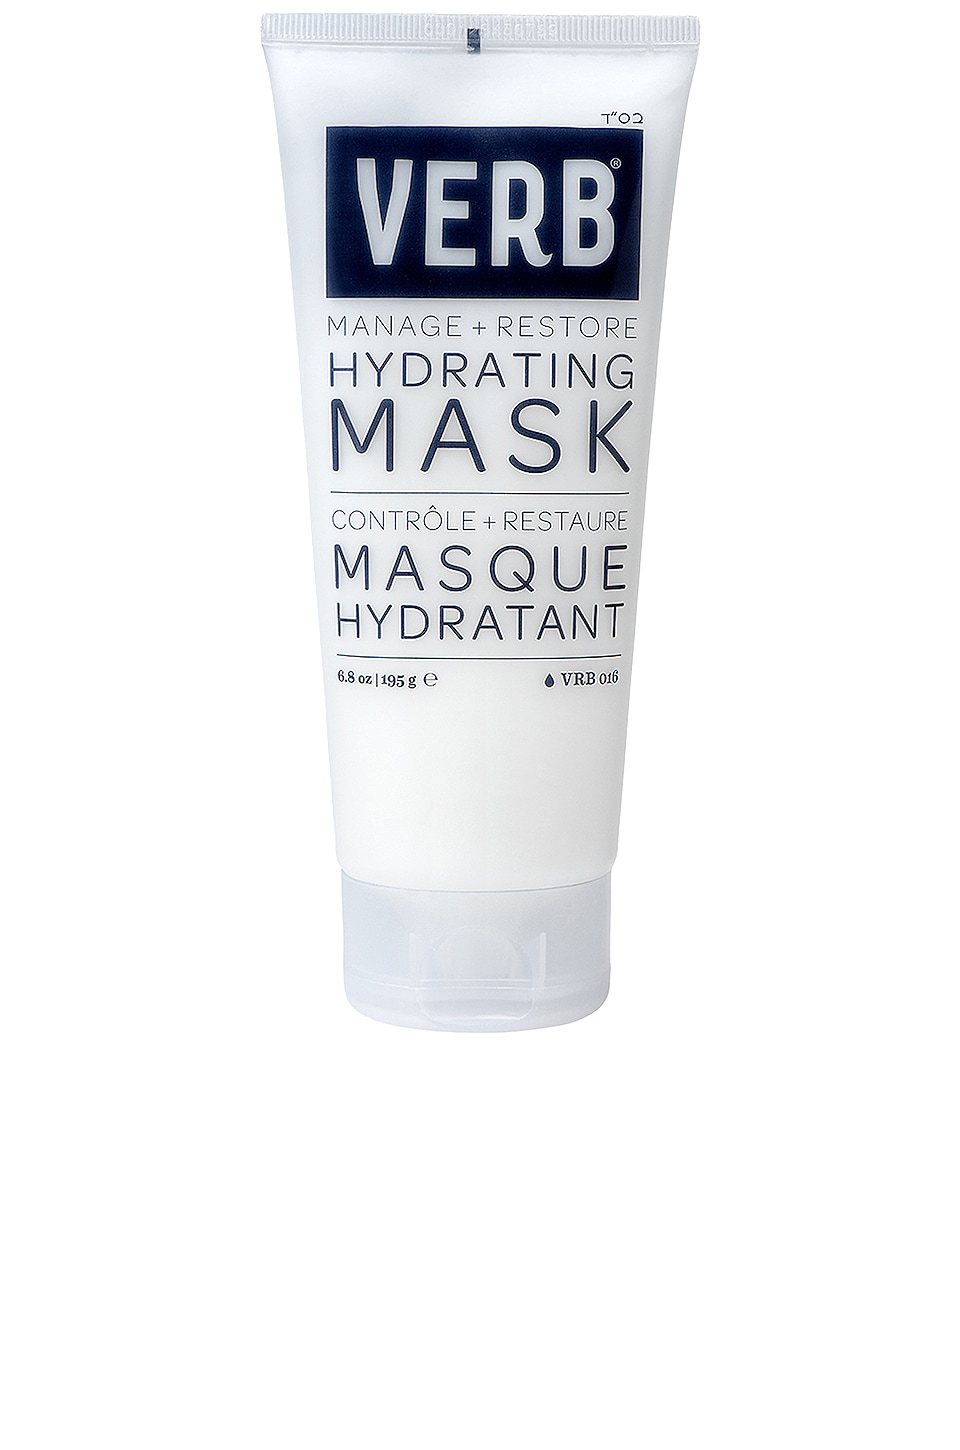 VERB MASQUE CAPILLAIRE HYDRATING MASK